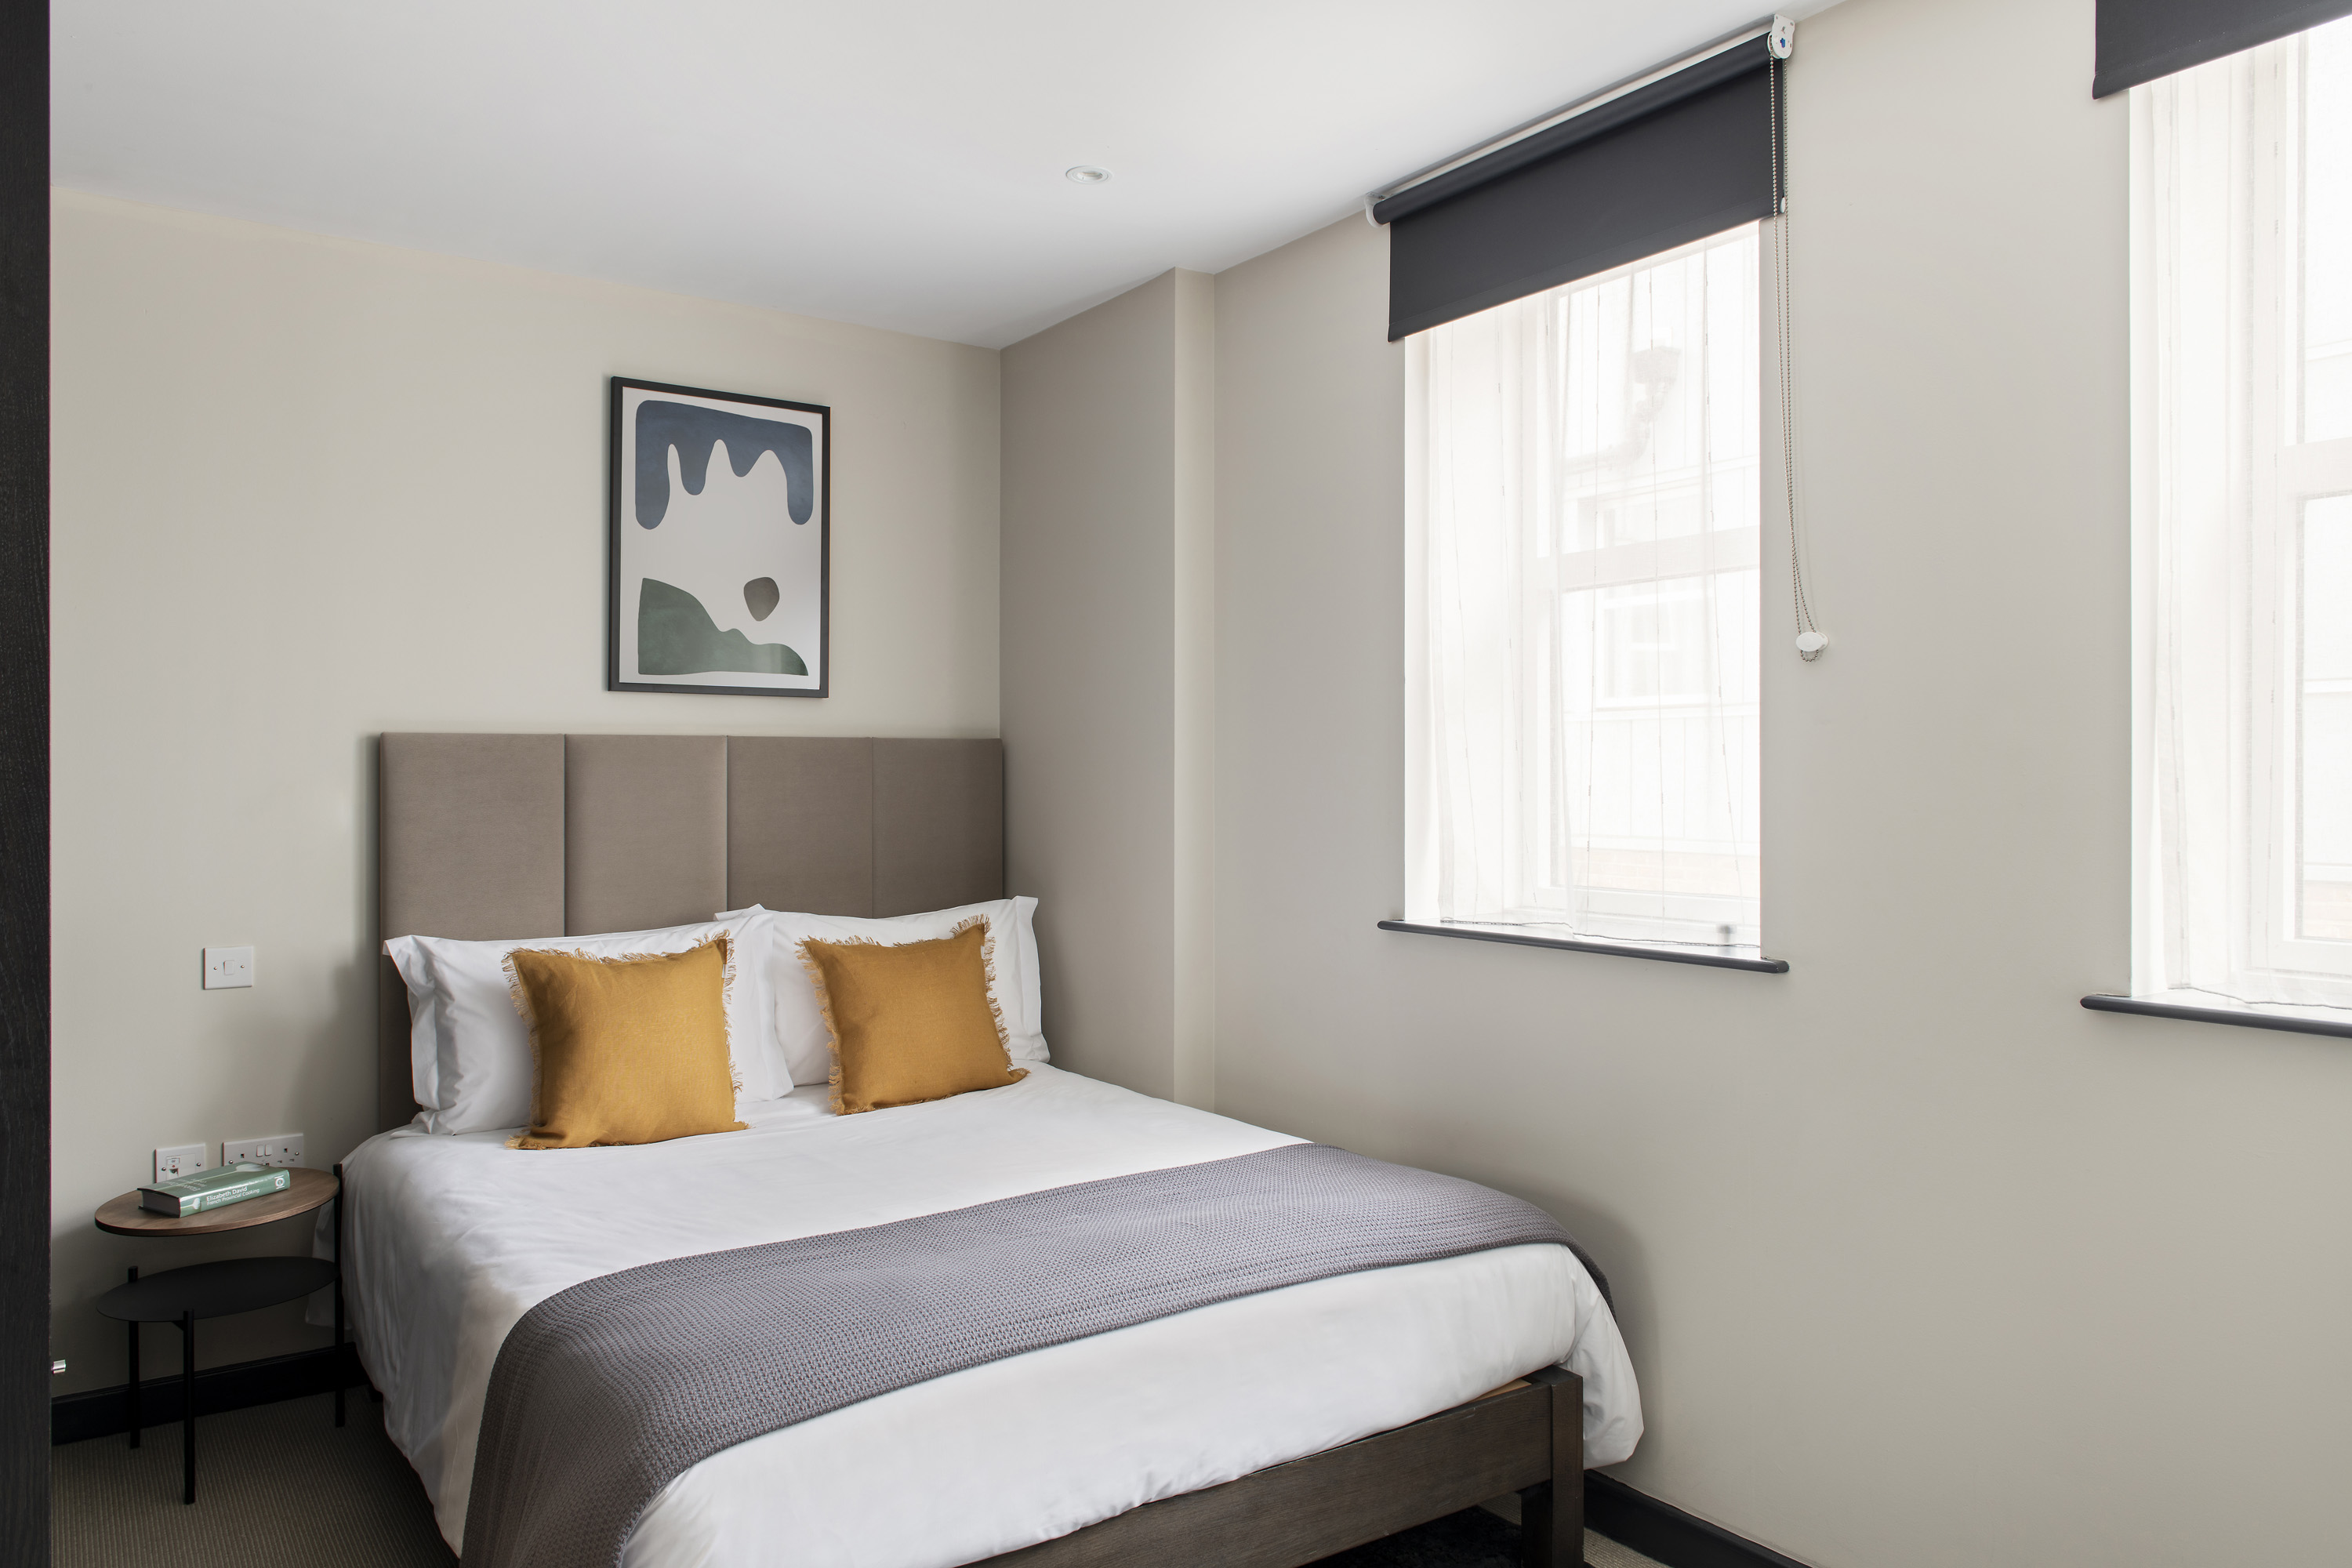 Bedroom at COVE Cannon Street, Mansion House, London - Citybase Apartments